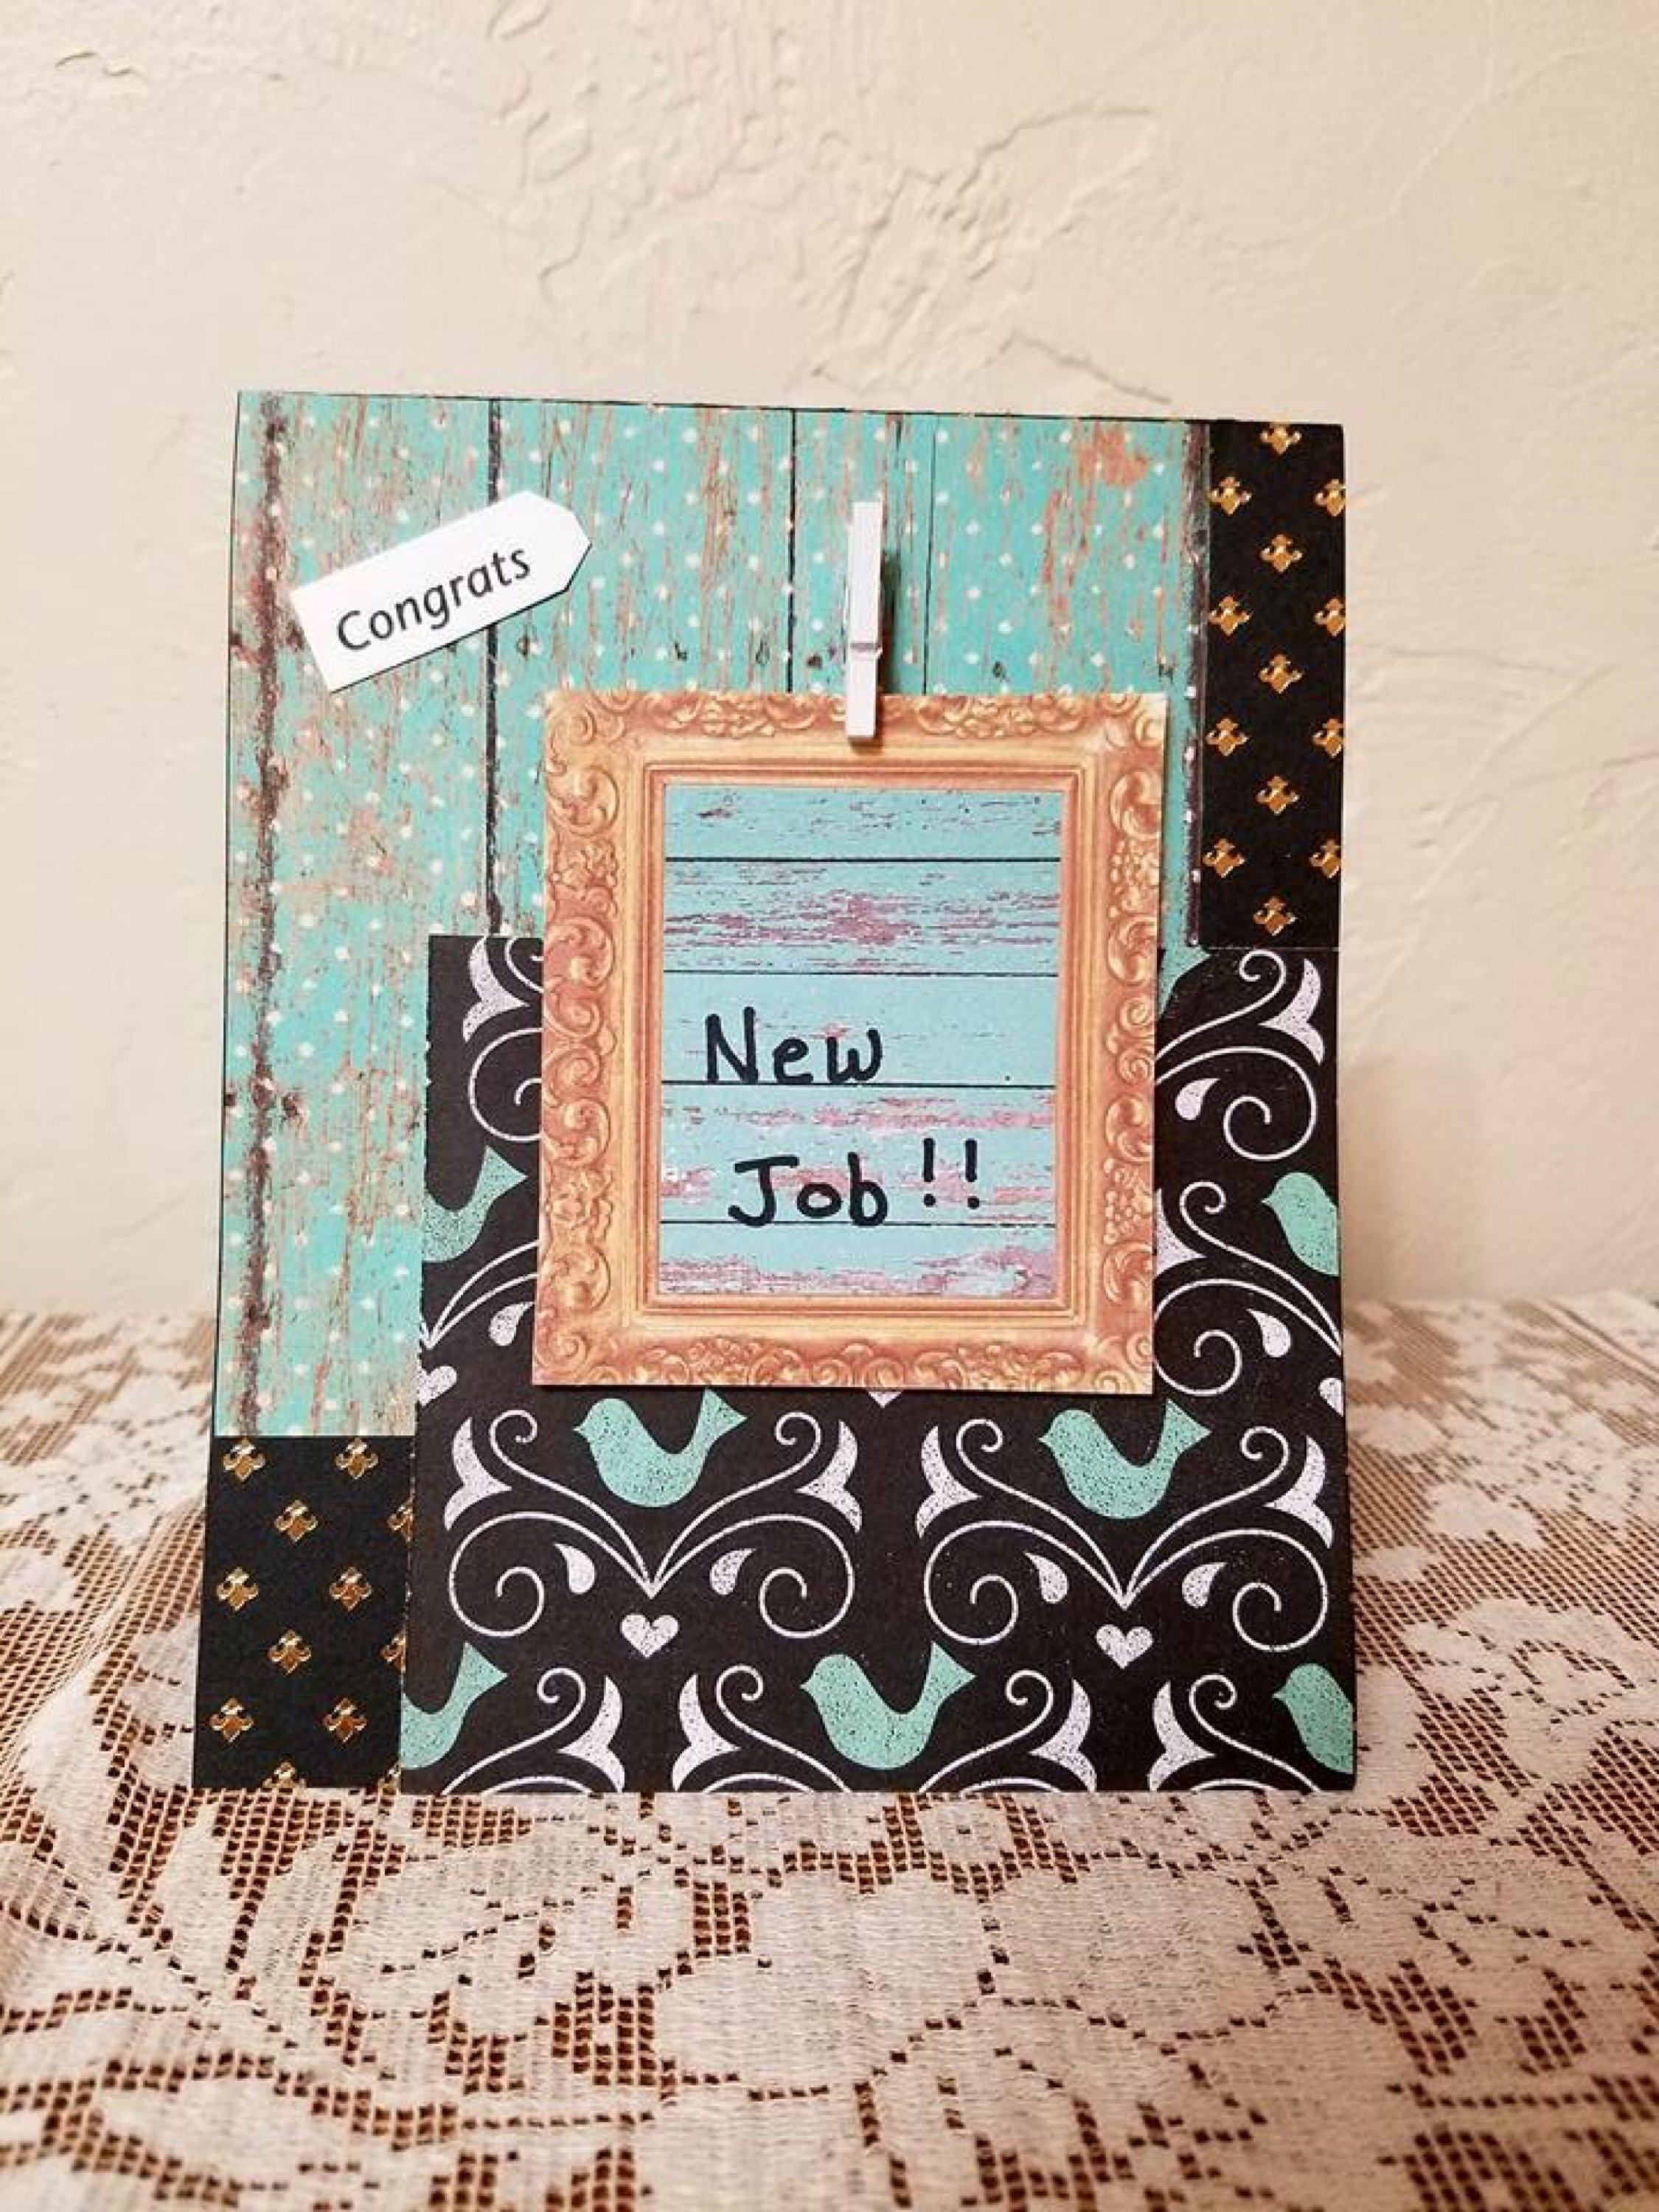 Congrats New Job Greeting Card E10261624441264392m 175